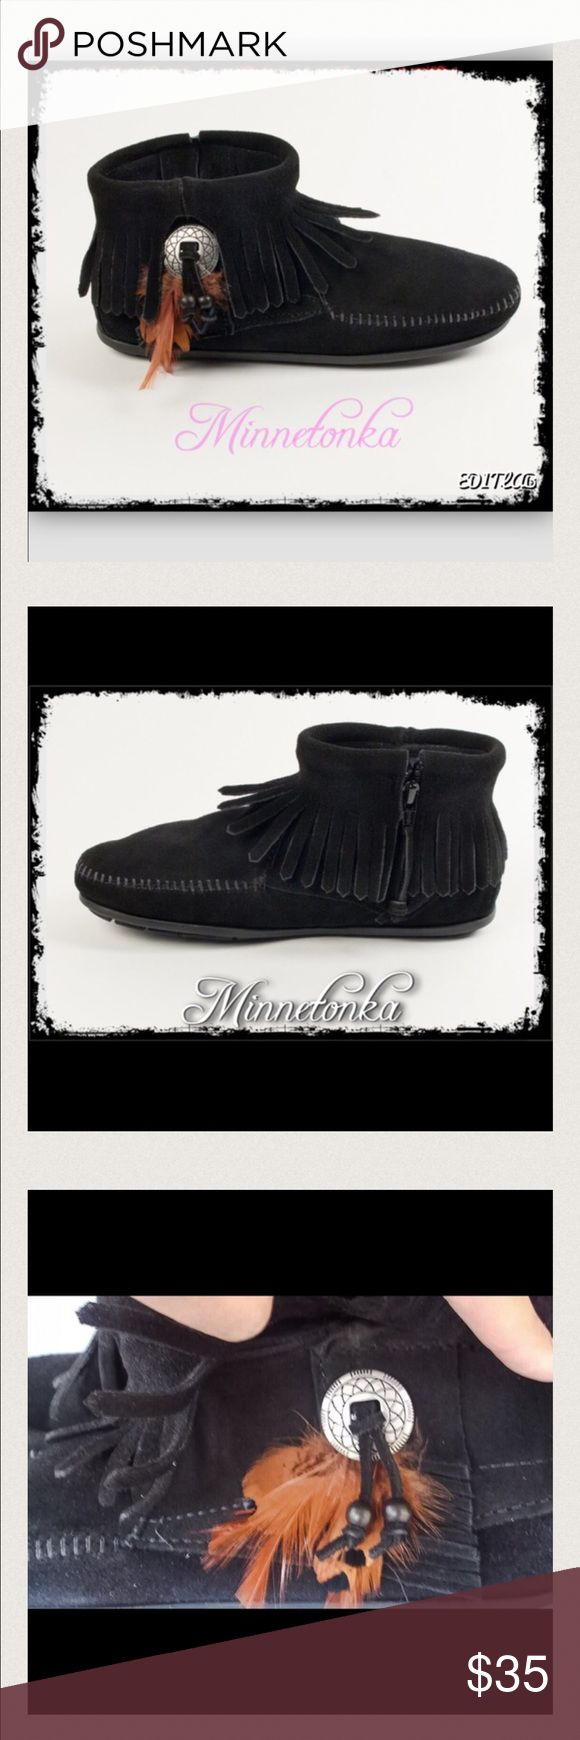 🎀Minnetonka Concho Booties🎀 Like new, worn a few times around the house only. Southwestern chic, metal conchos, decorative feathers and beads peak through the all around fringe on these Southwest inspired mocassin boots. Handmade from supple suede , these booties wrap your feet in supple softness. With a side zipper, these one of a kind ankle boots are easy to slip on and off. Minnetonka Shoes Moccasins